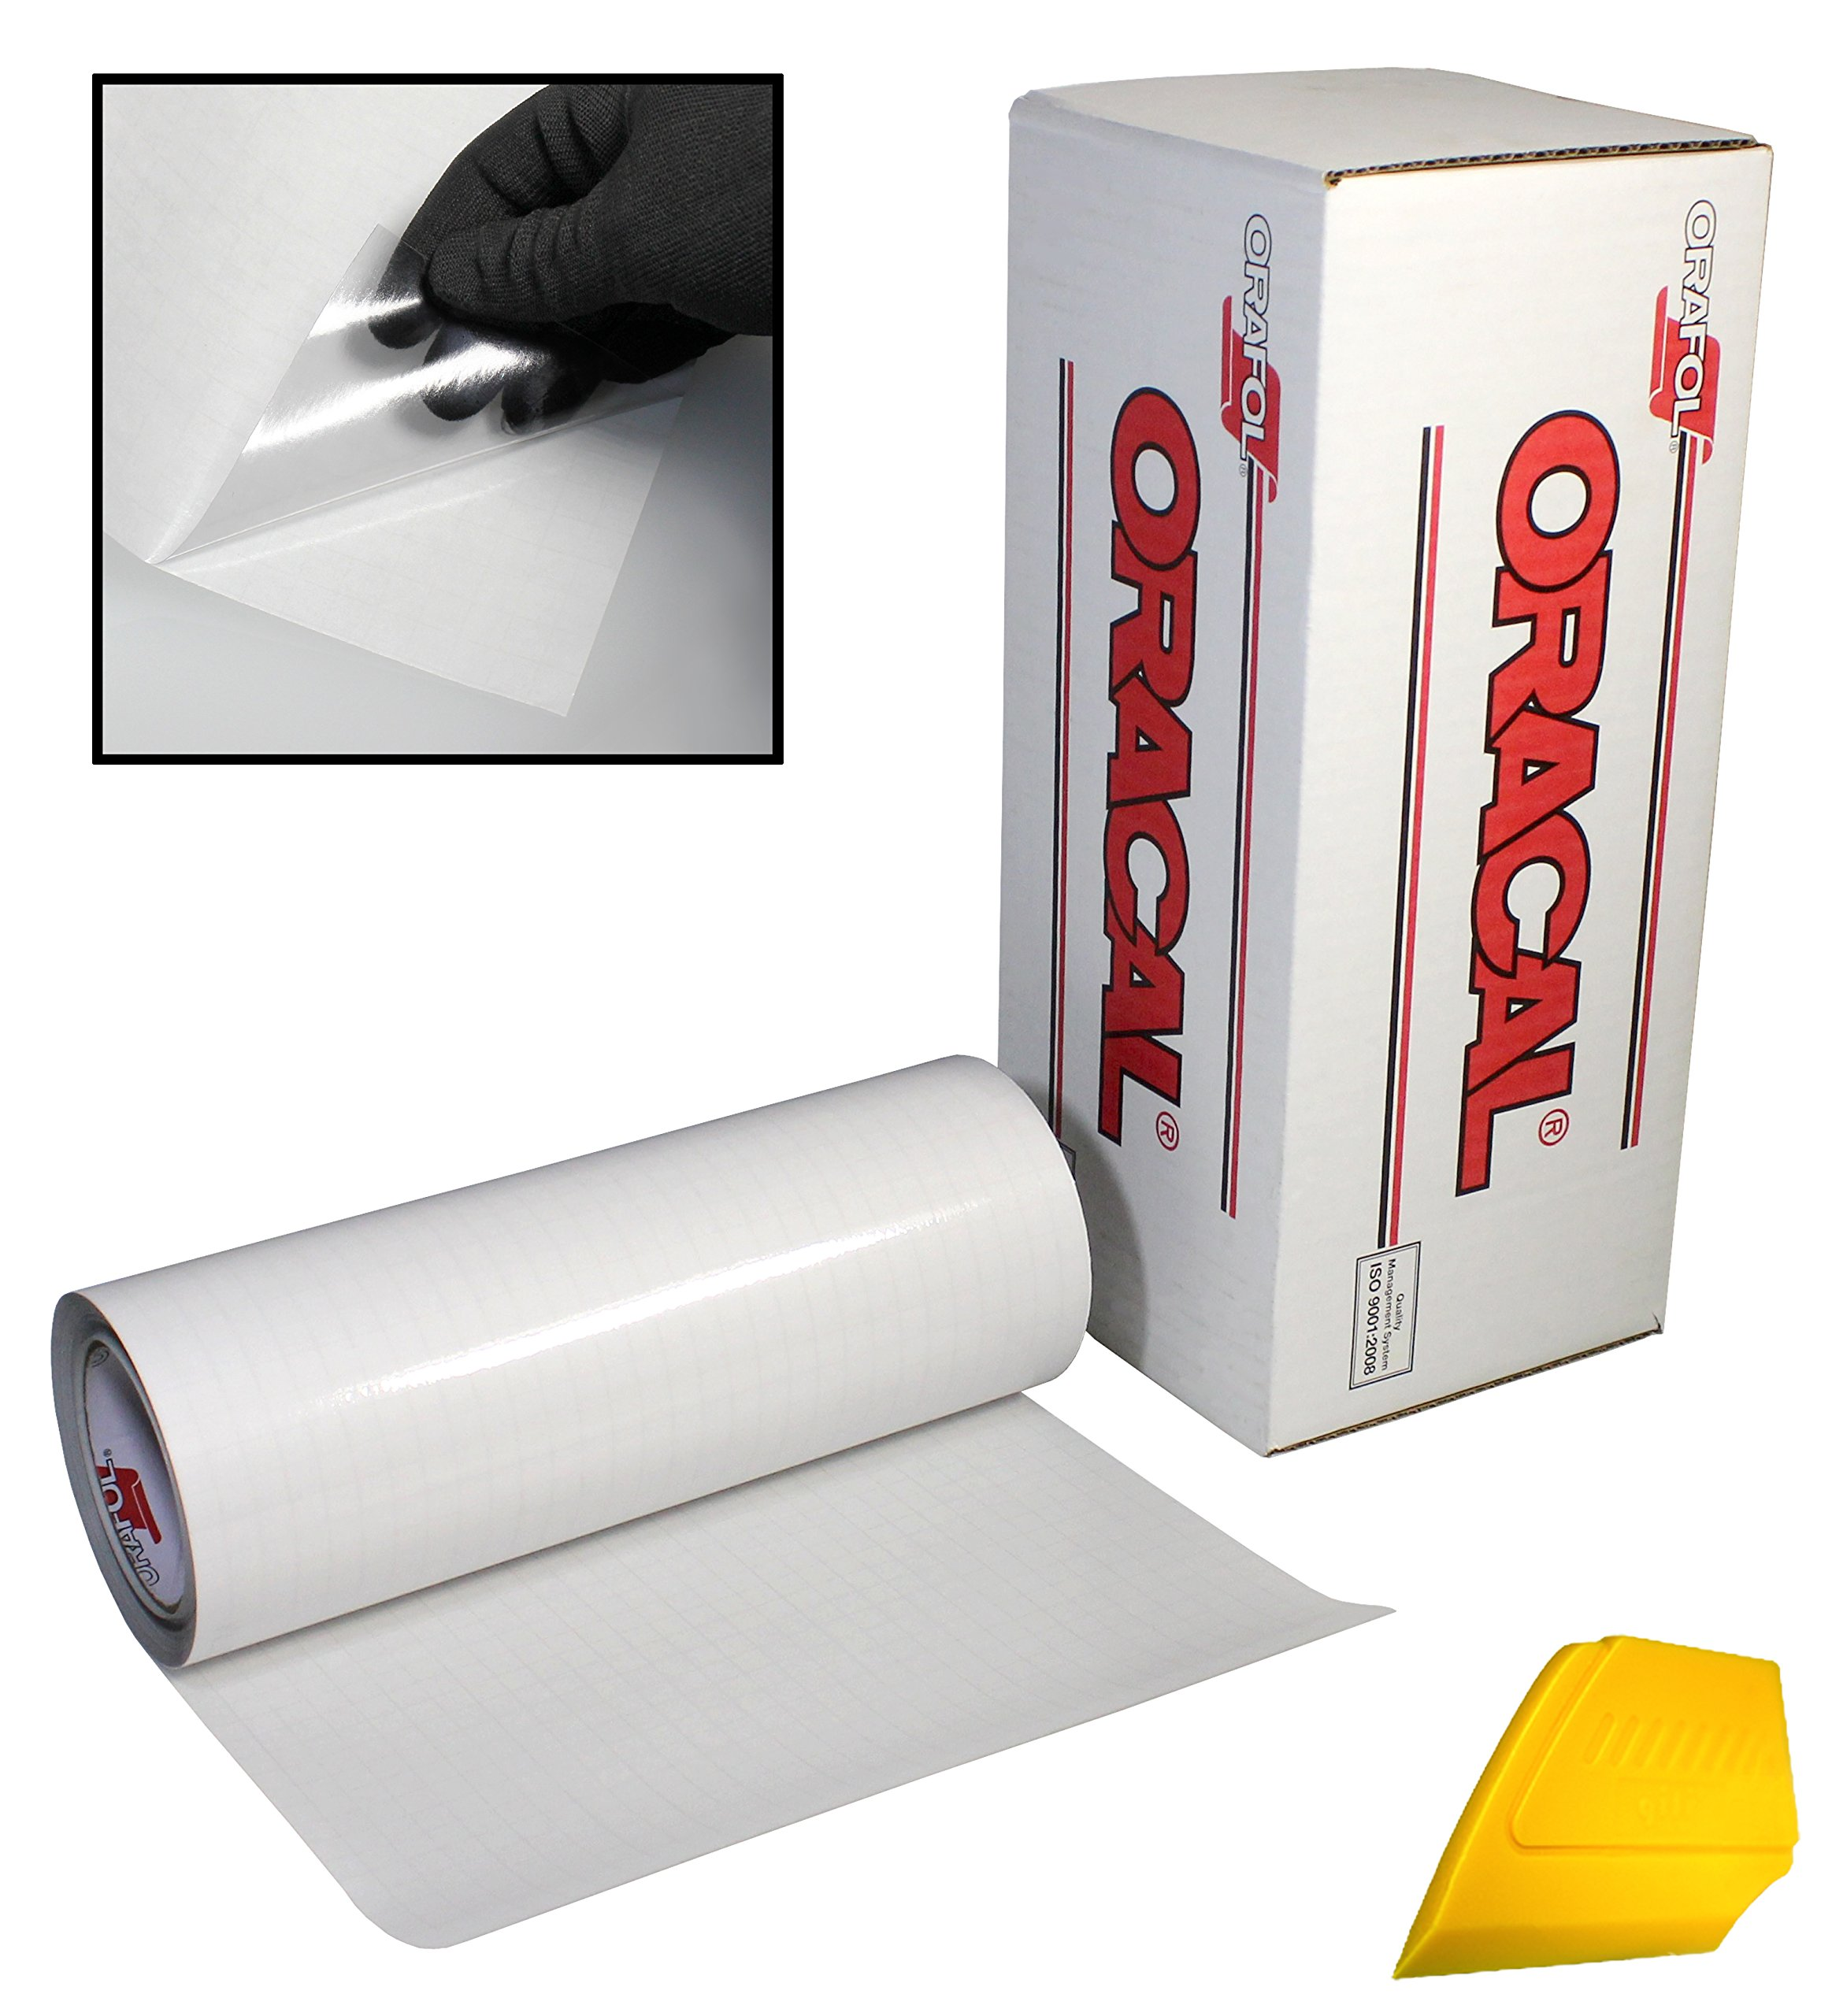 ORACAL Transparent Transfer Paper Tape Roll w/Hard Yellow Detailer Squeegee (25ft x 12'')